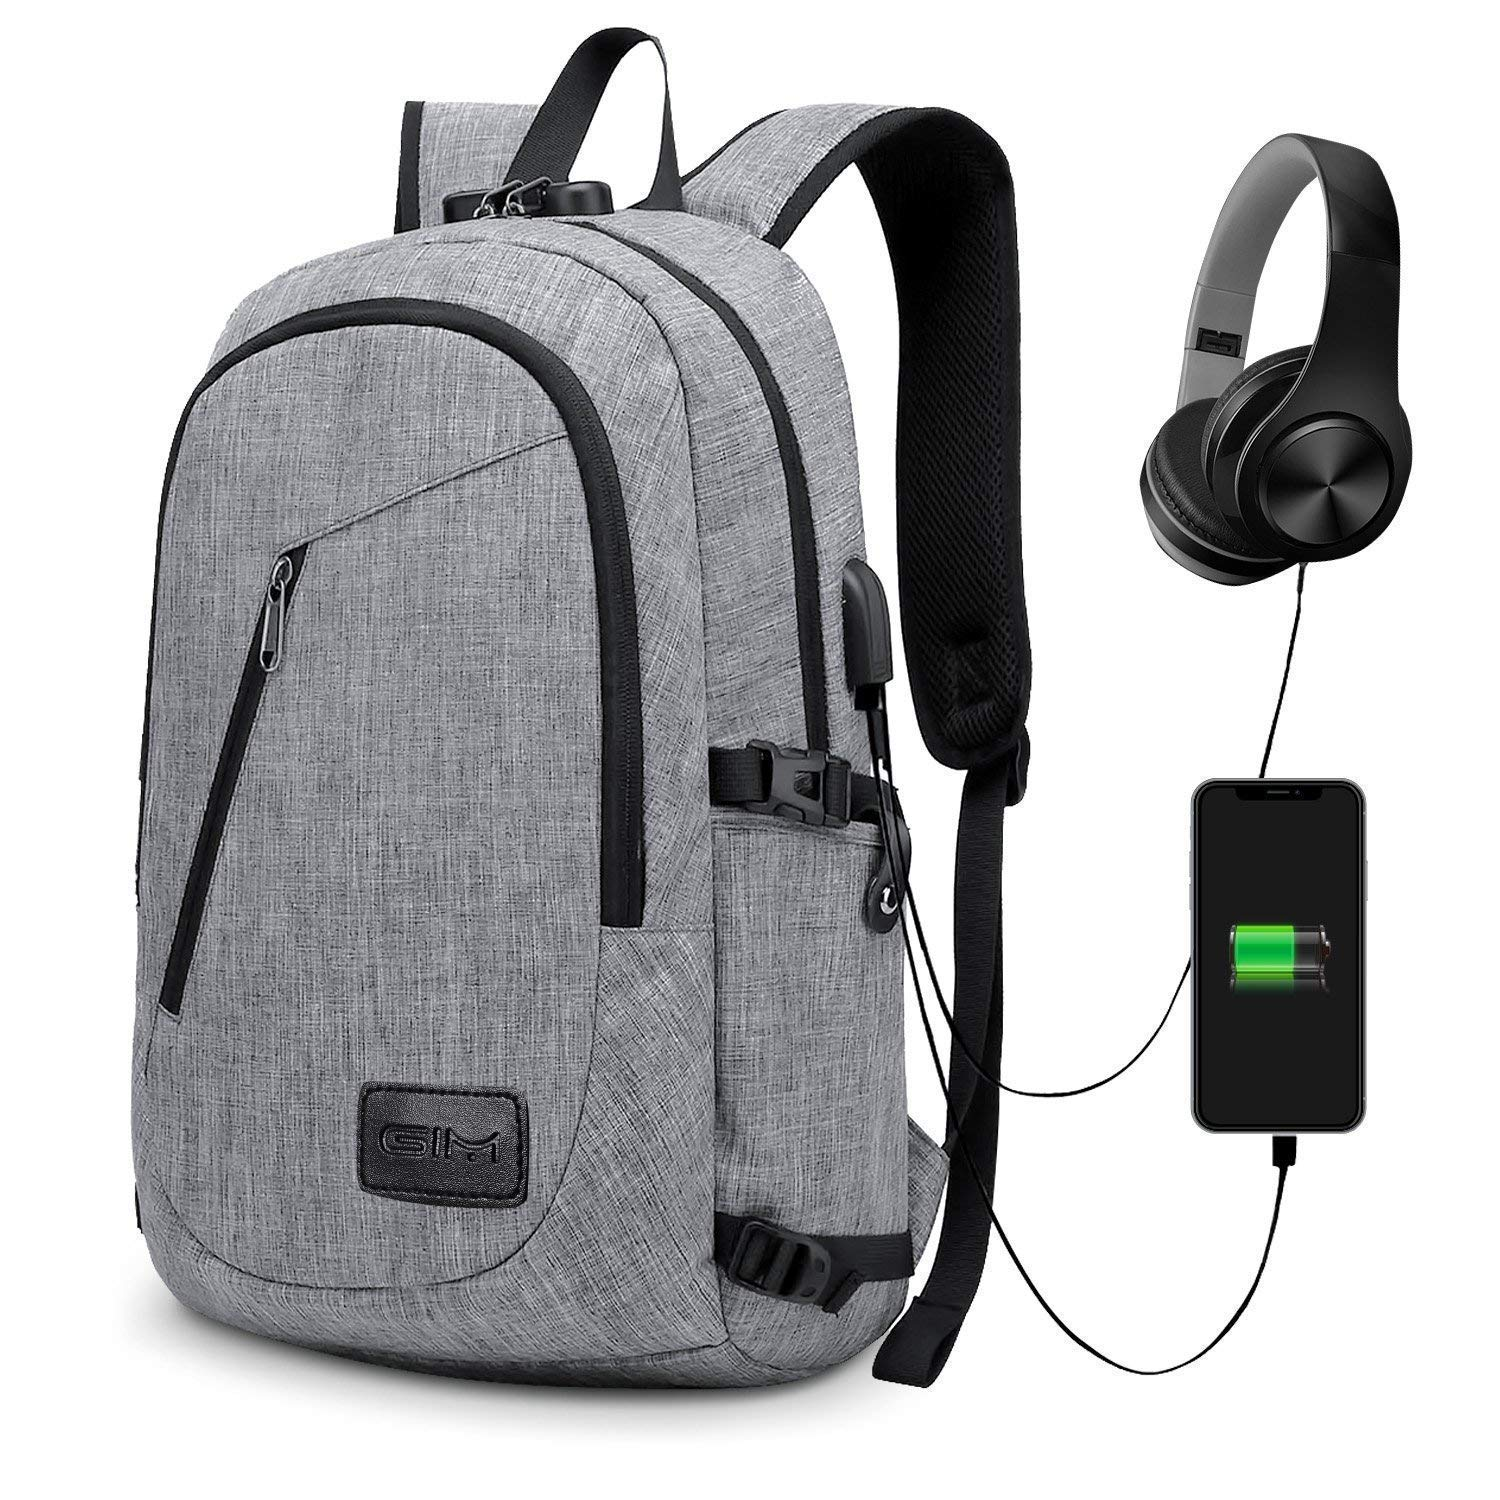 ... GIM Theft Business Laptop Backpack with USB Charging Port and Earphone  Port with Lock Slim Water Resistant Bag Daypack 15.6 Inch Computer Rucksack  for ... 34c0ffdda2ad0